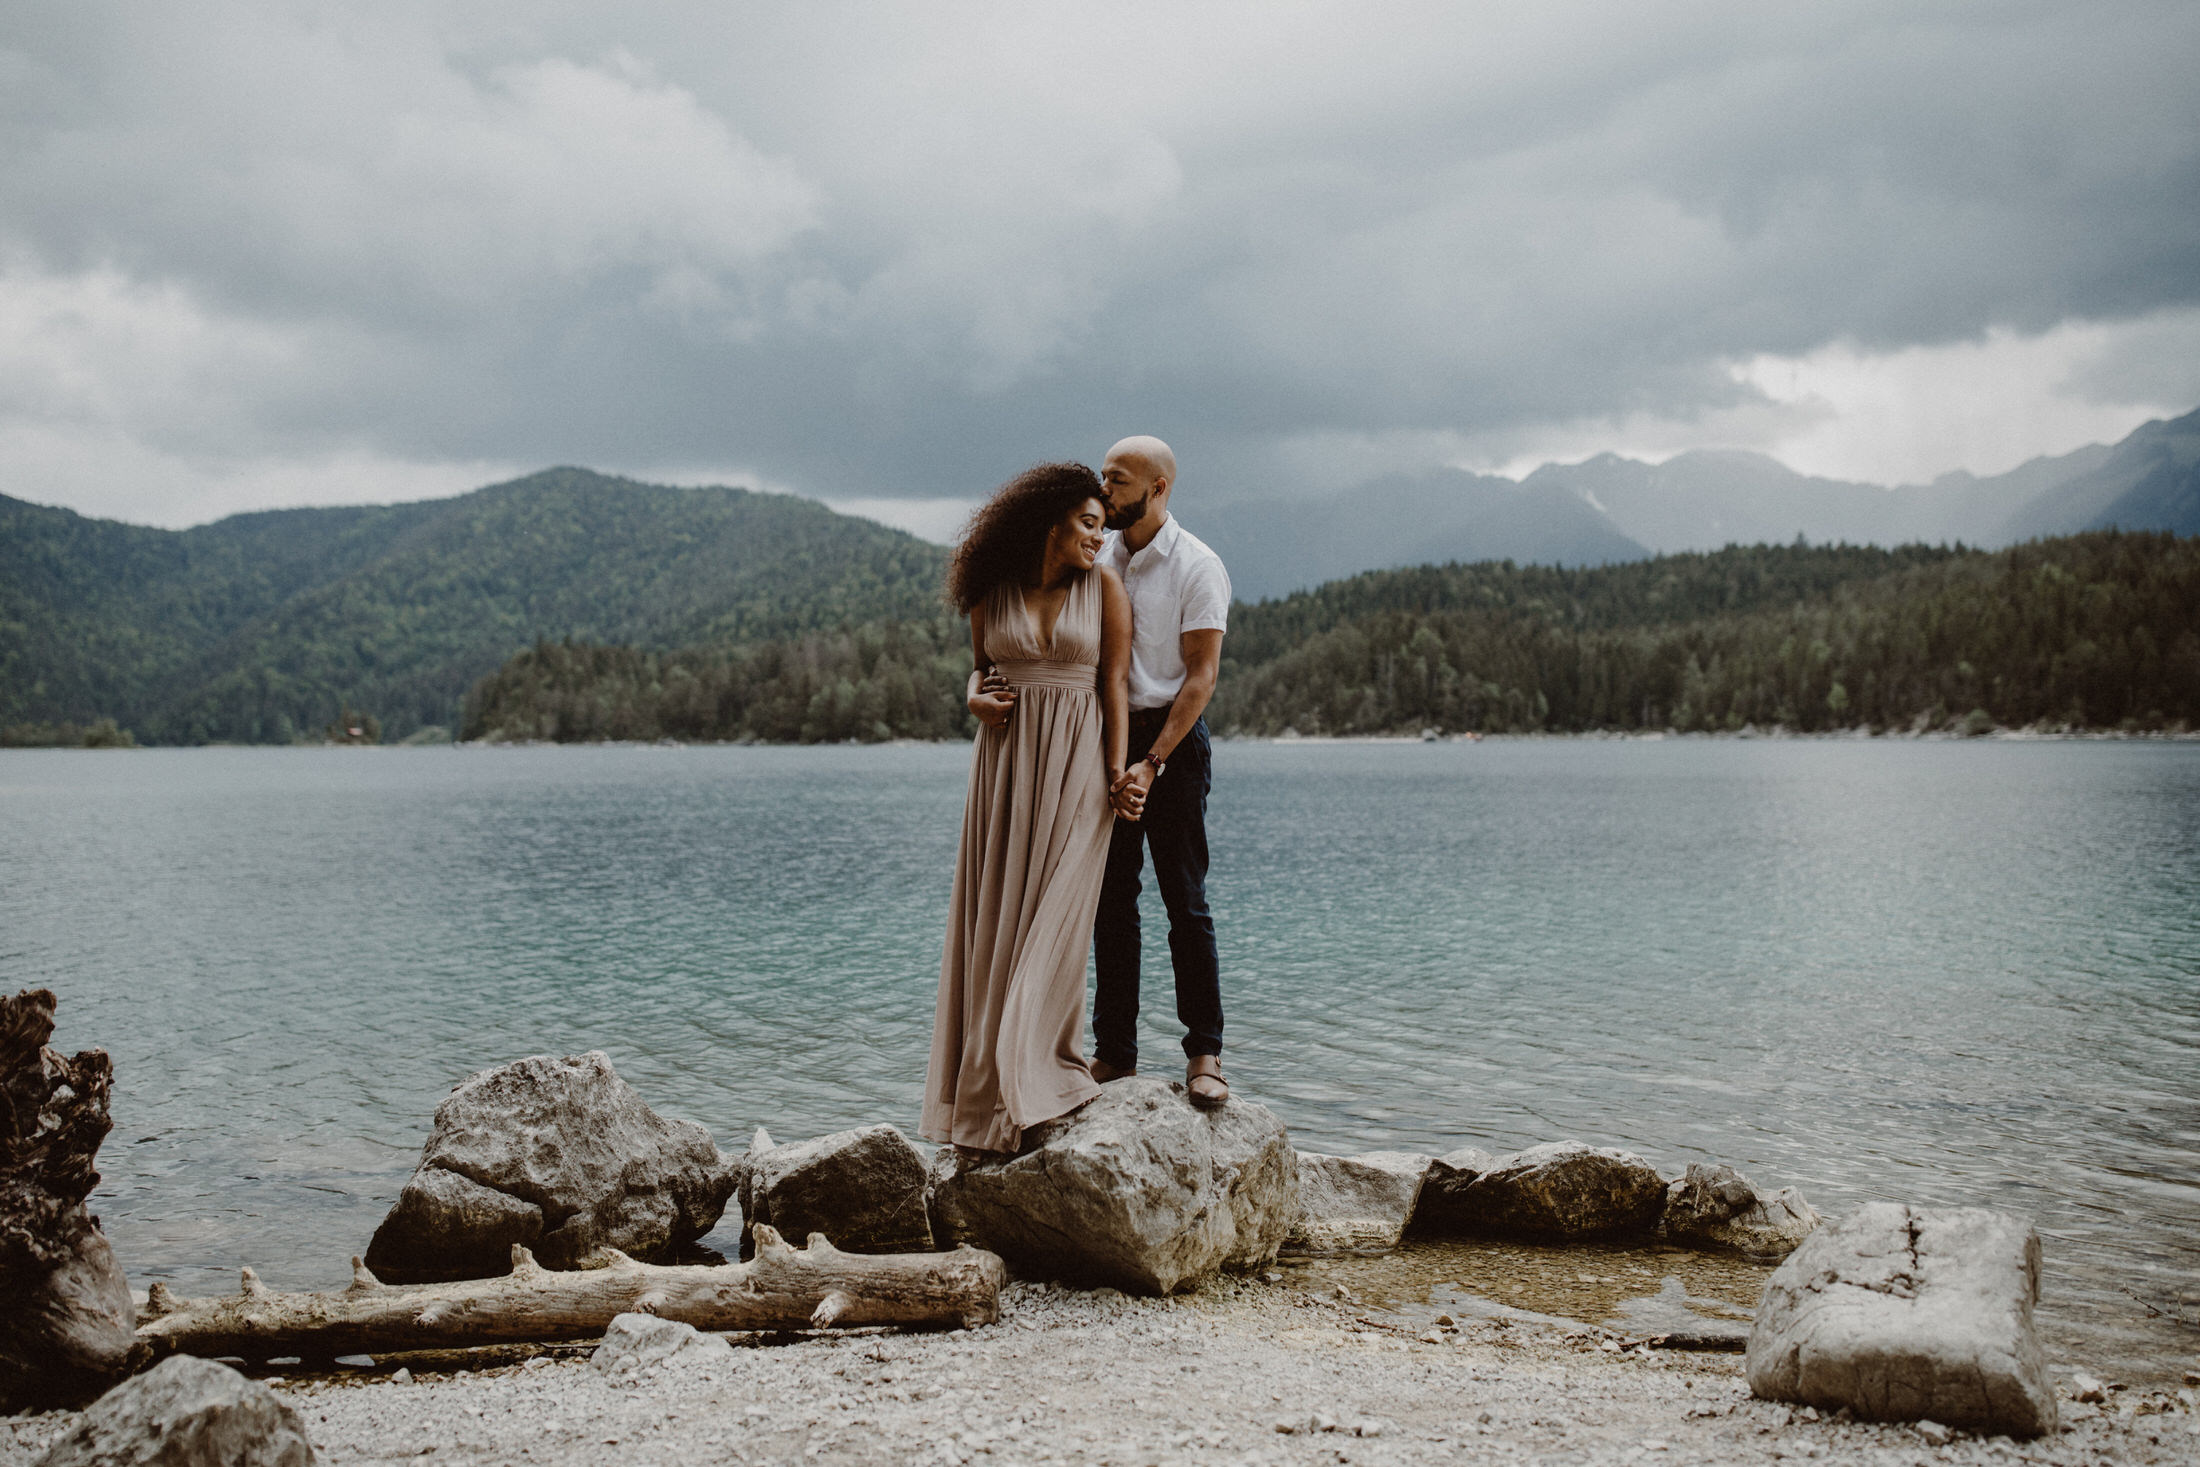 breanna-and-justin-engagement-photos-eibsee-garmisch-partenkirchen-0019